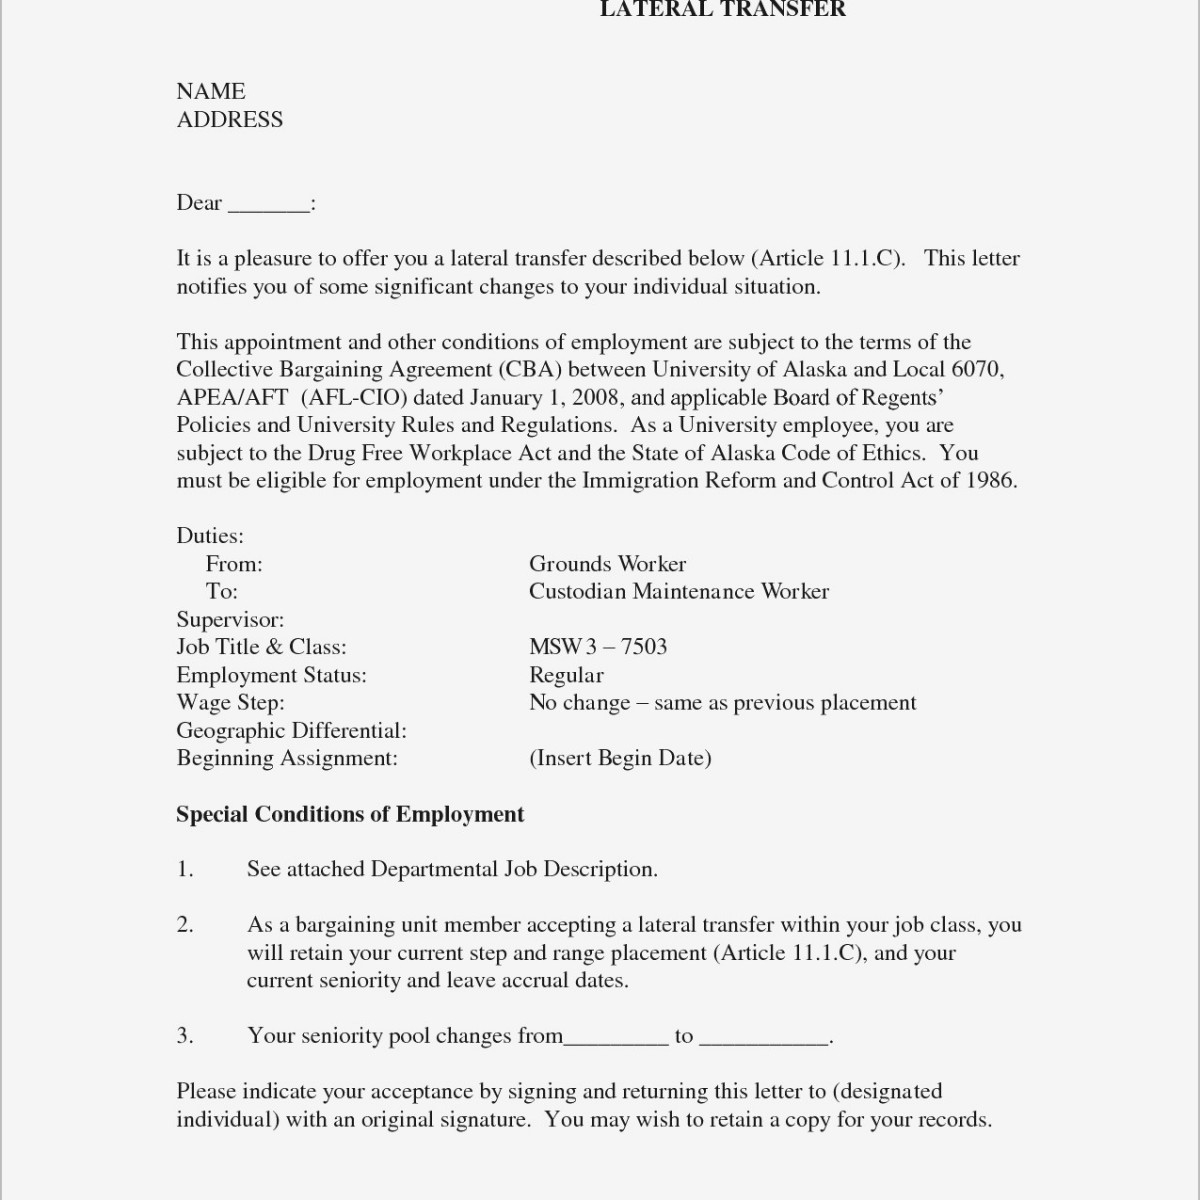 Accountant Resume Examples - Resume Title Samples Luxury Accountant Resume Save Job Resume